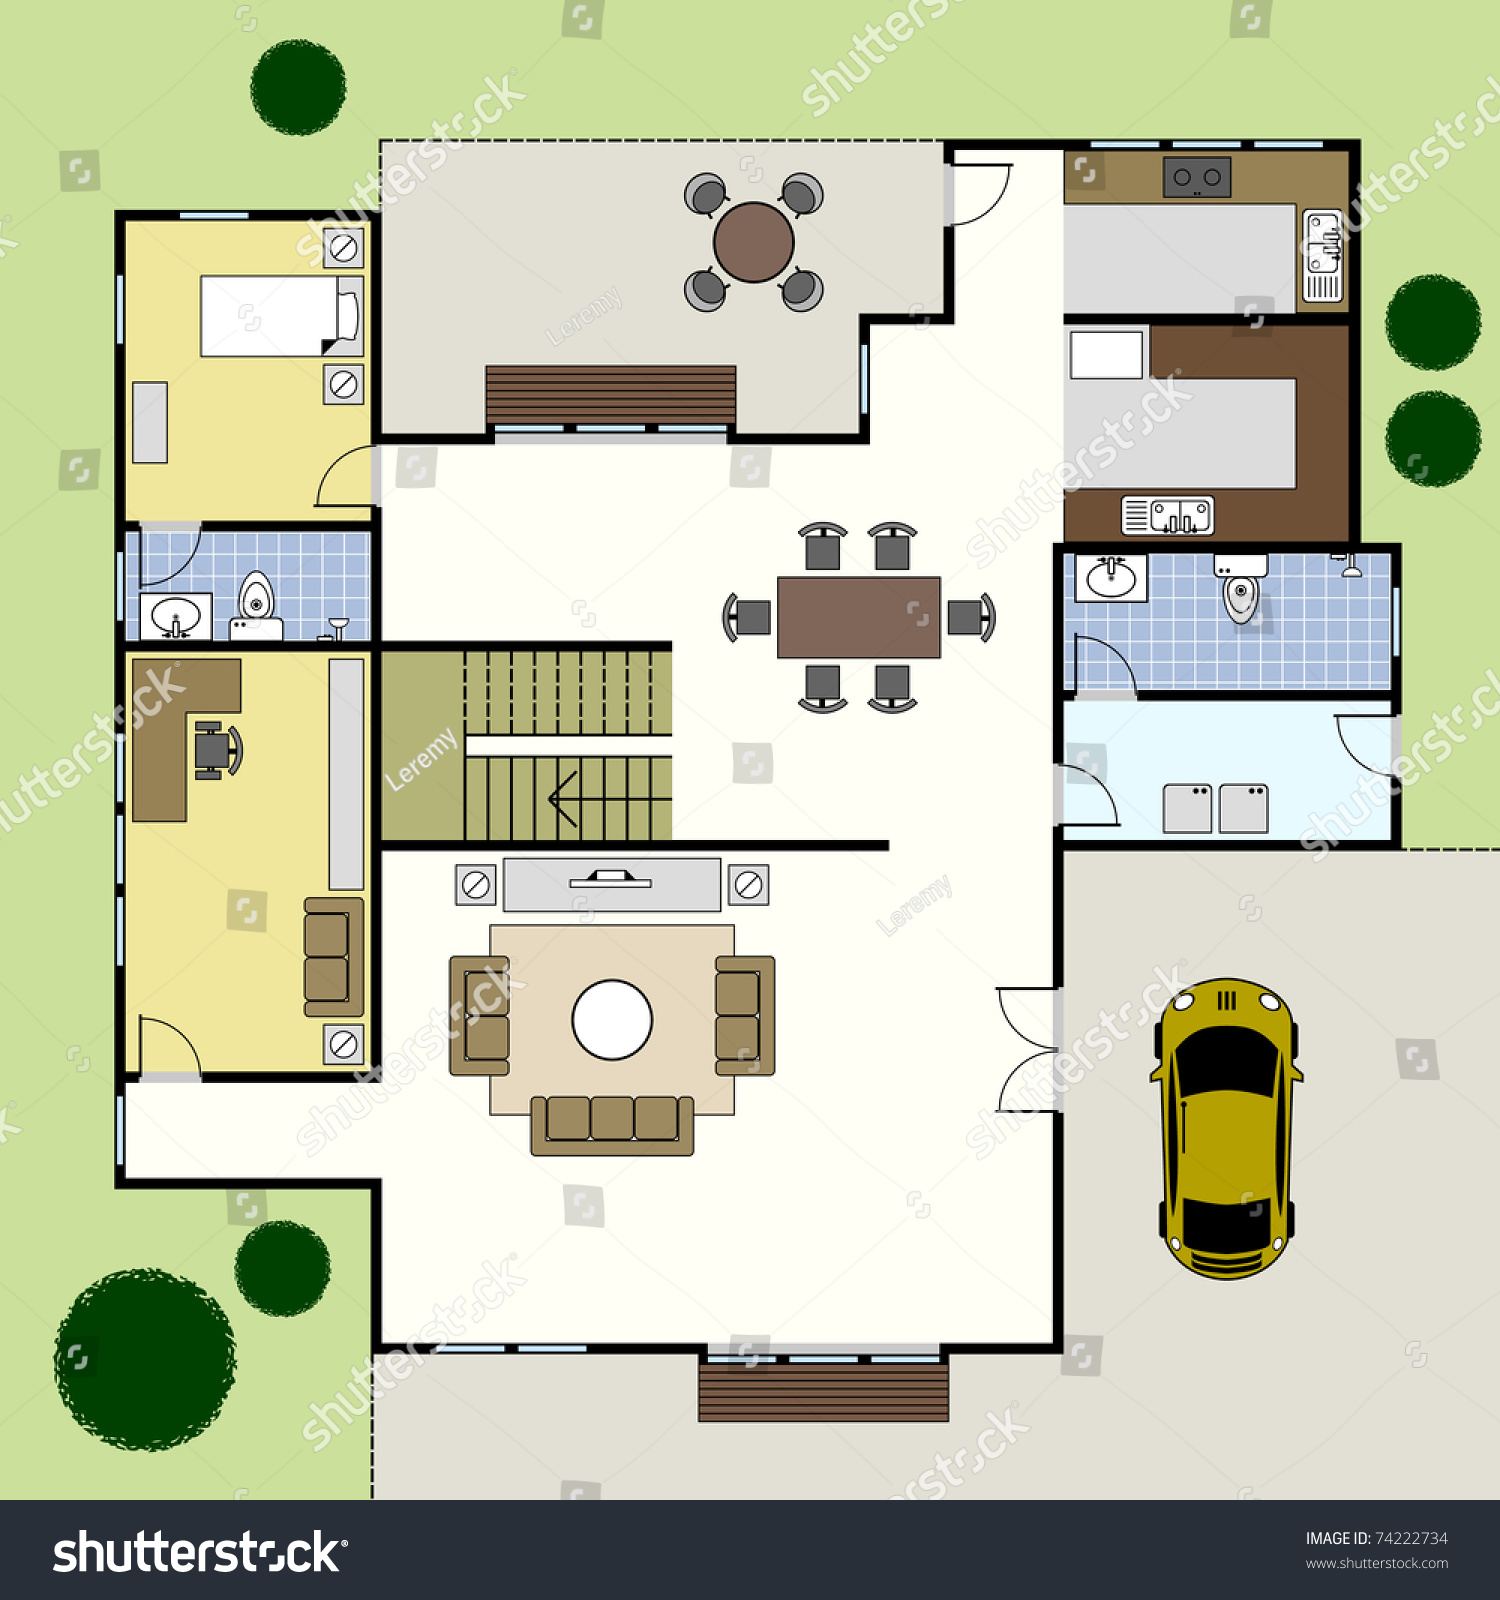 ground floor plan floorplan house home building architecture blueprint house plans home plans plans residential plans